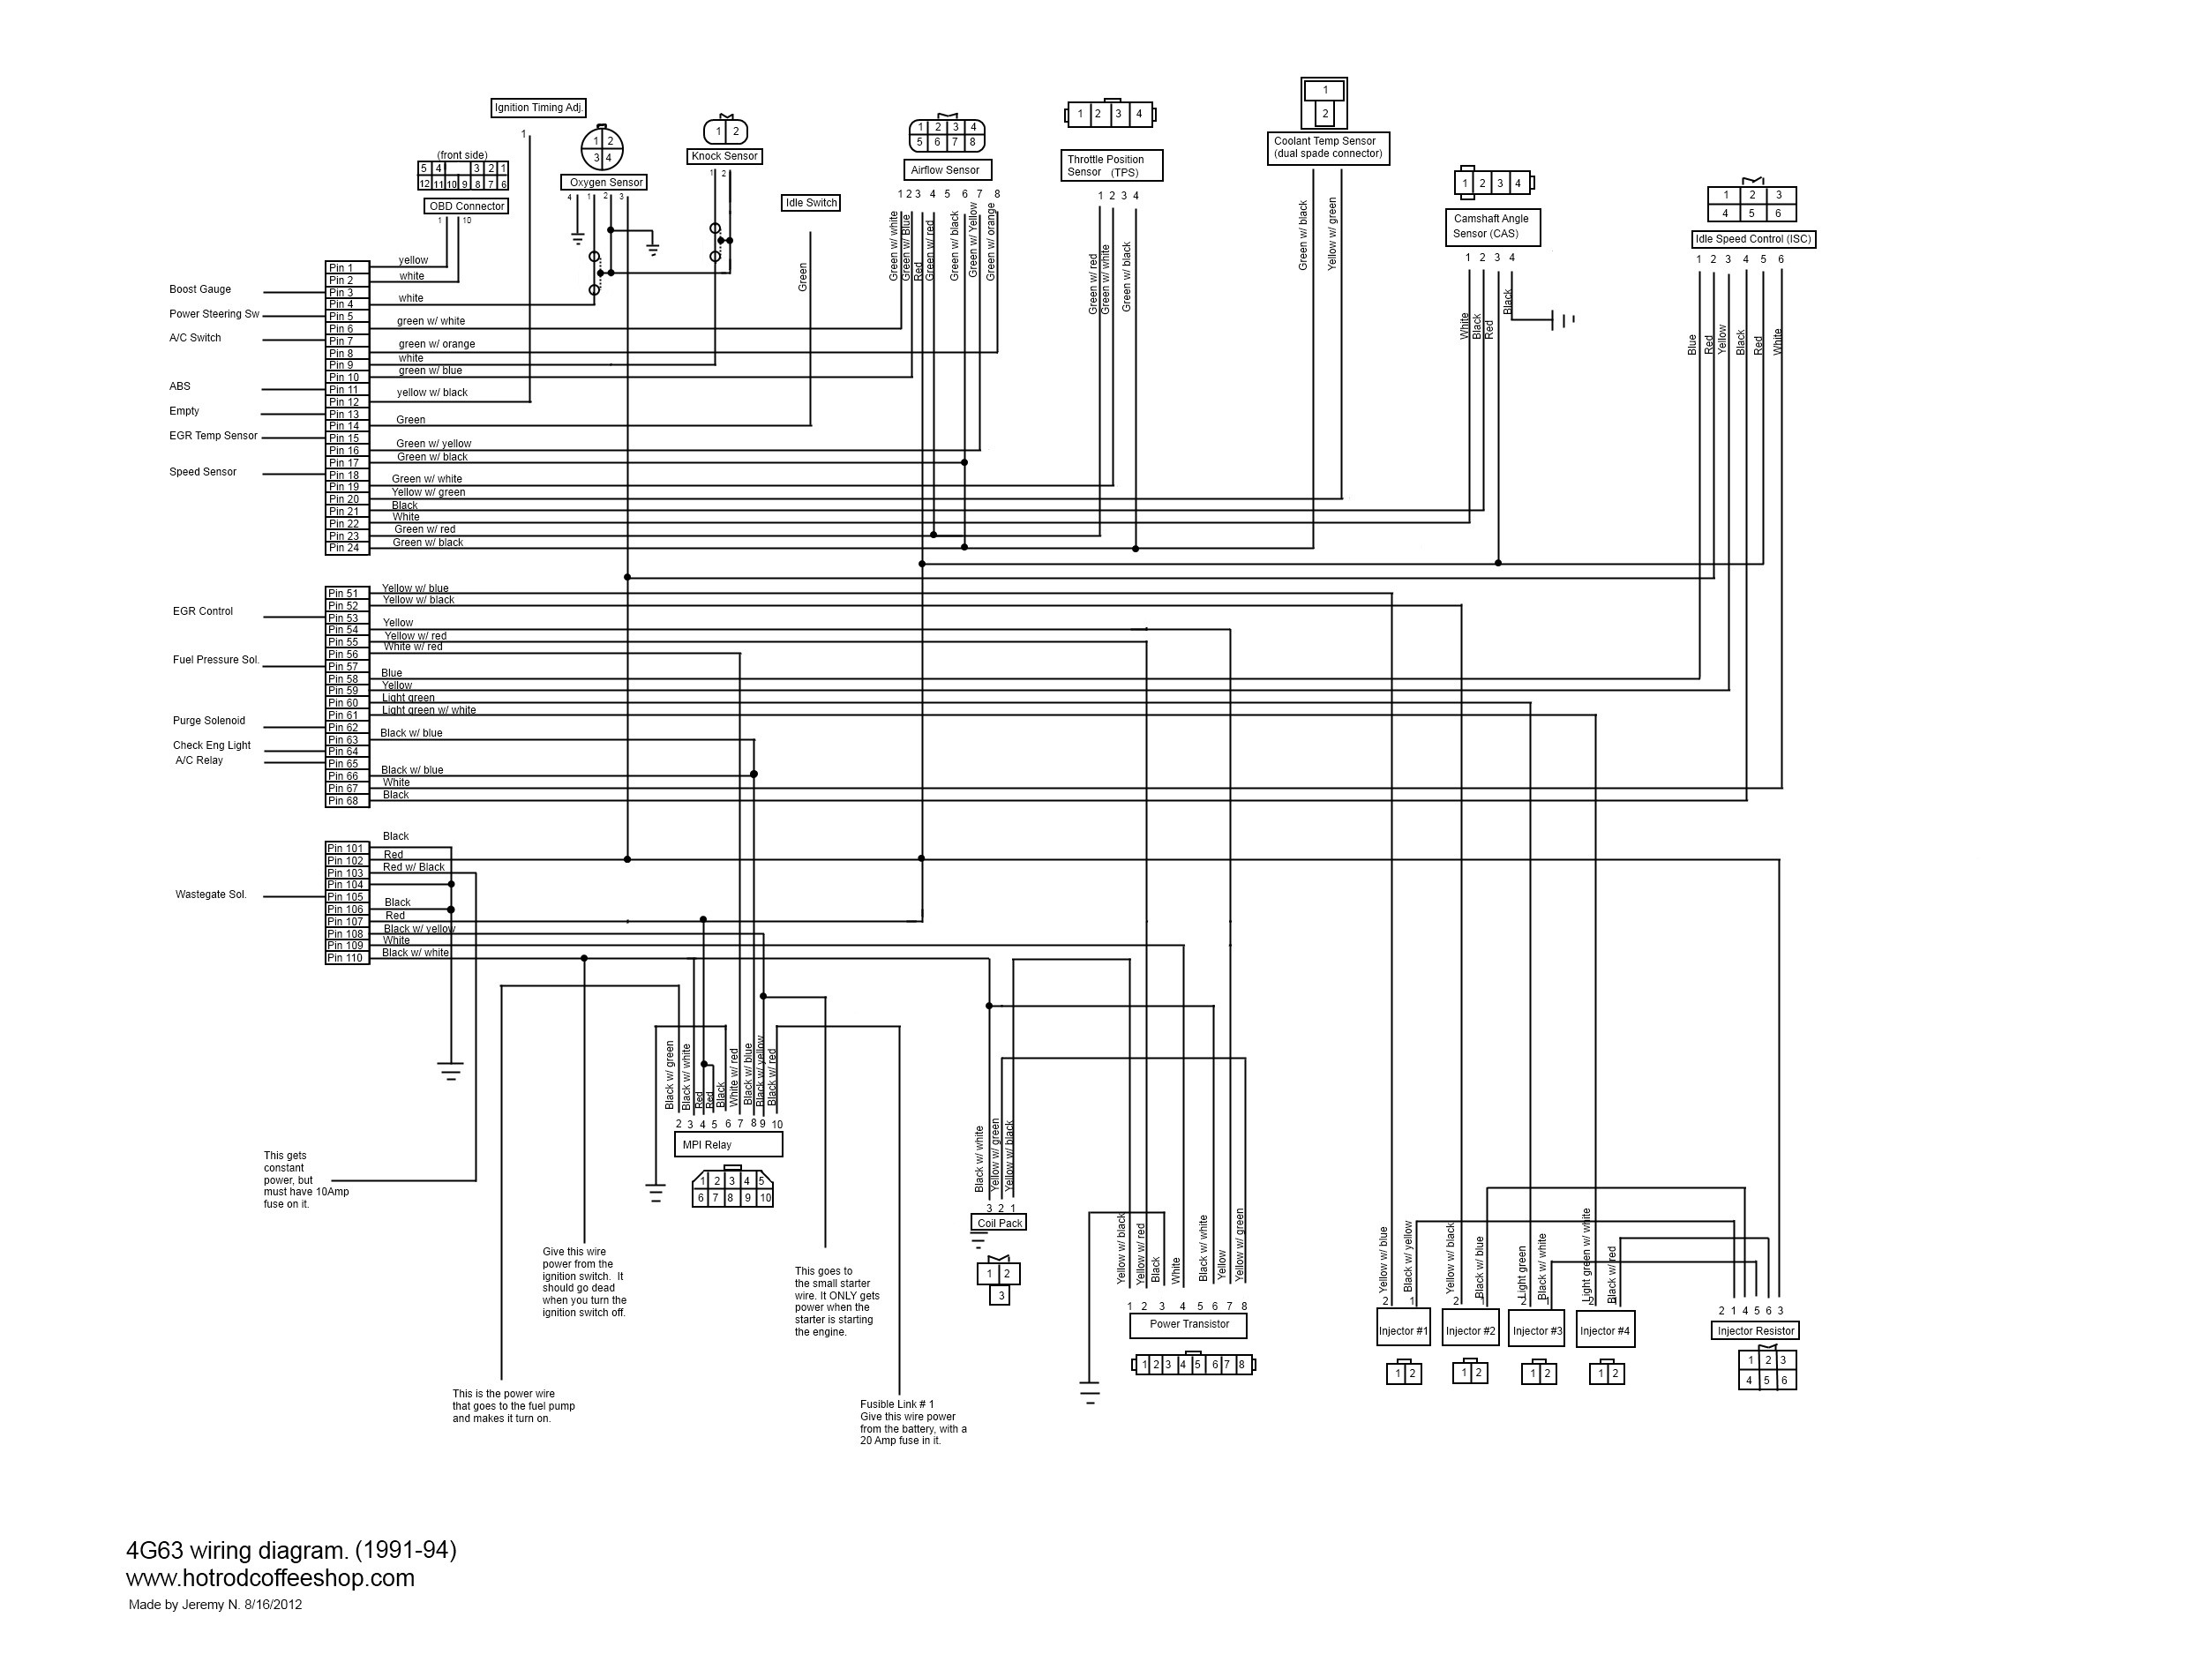 Evo 8 Maf Wiring Diagram - Wiring Diagram Schema  Silverado Wiring Diagram Maf on 01 silverado sub box, 01 silverado 6 inch lift, 01 silverado fuse diagrams, 01 silverado brake line diagram, 01 silverado ac diagram, 01 silverado engine diagram,